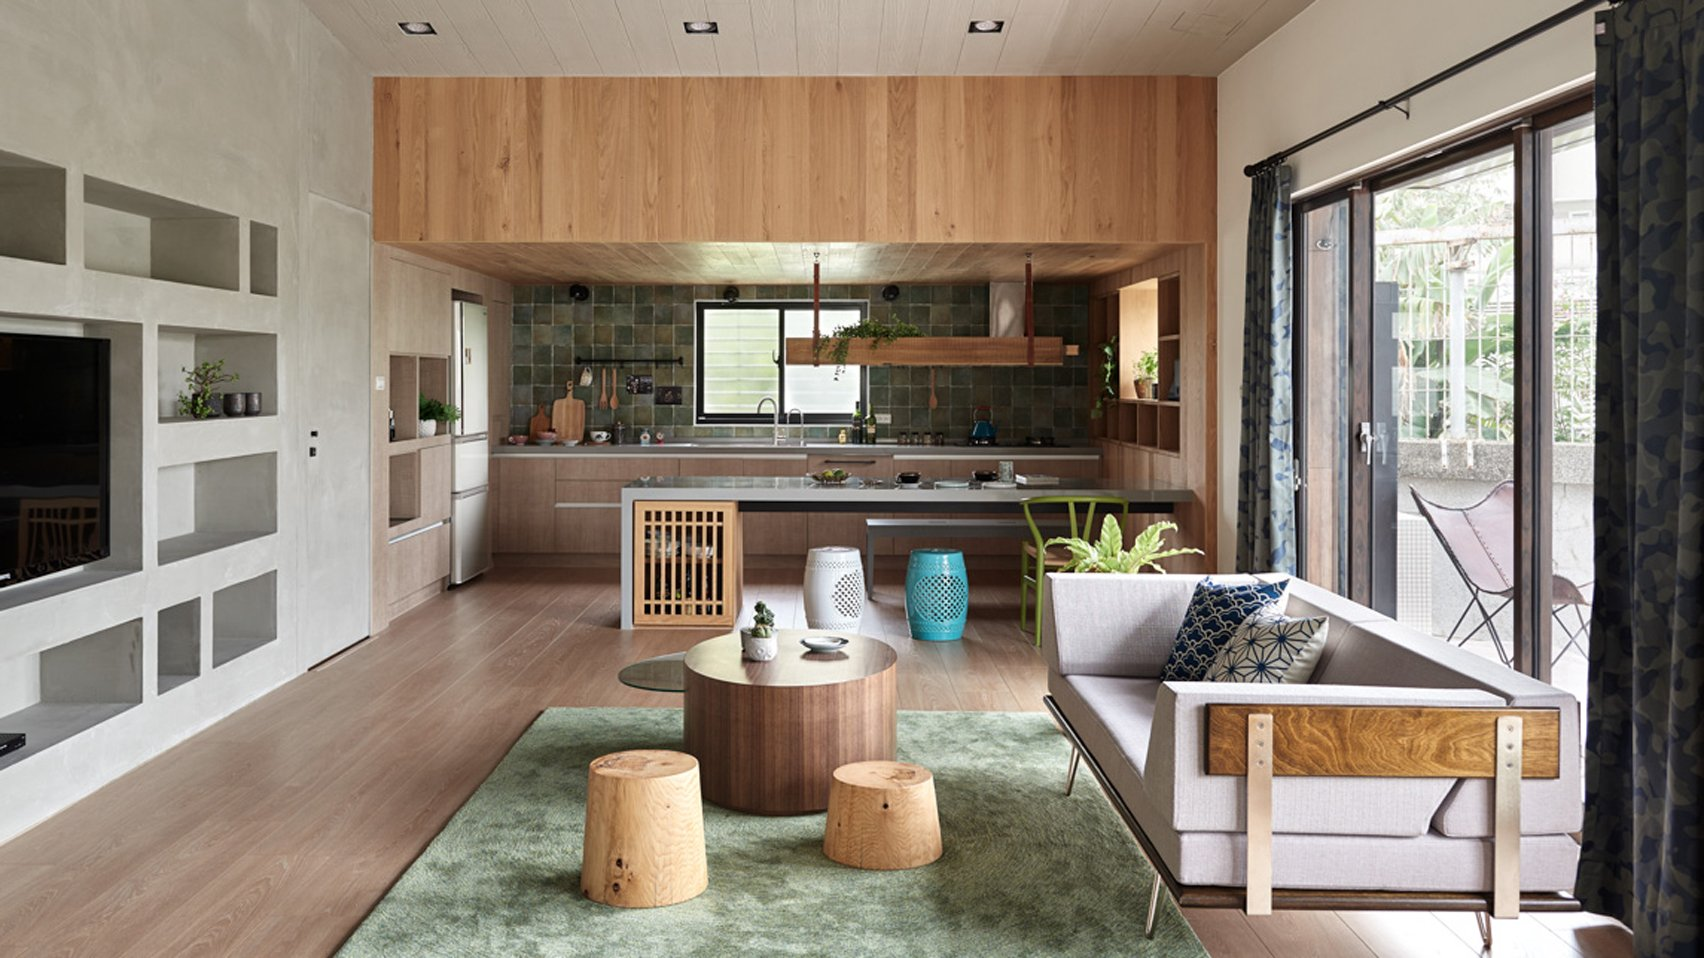 Charmant 10 Japanese Themed Interiors From Dezeenu0027s Pinterest Boards